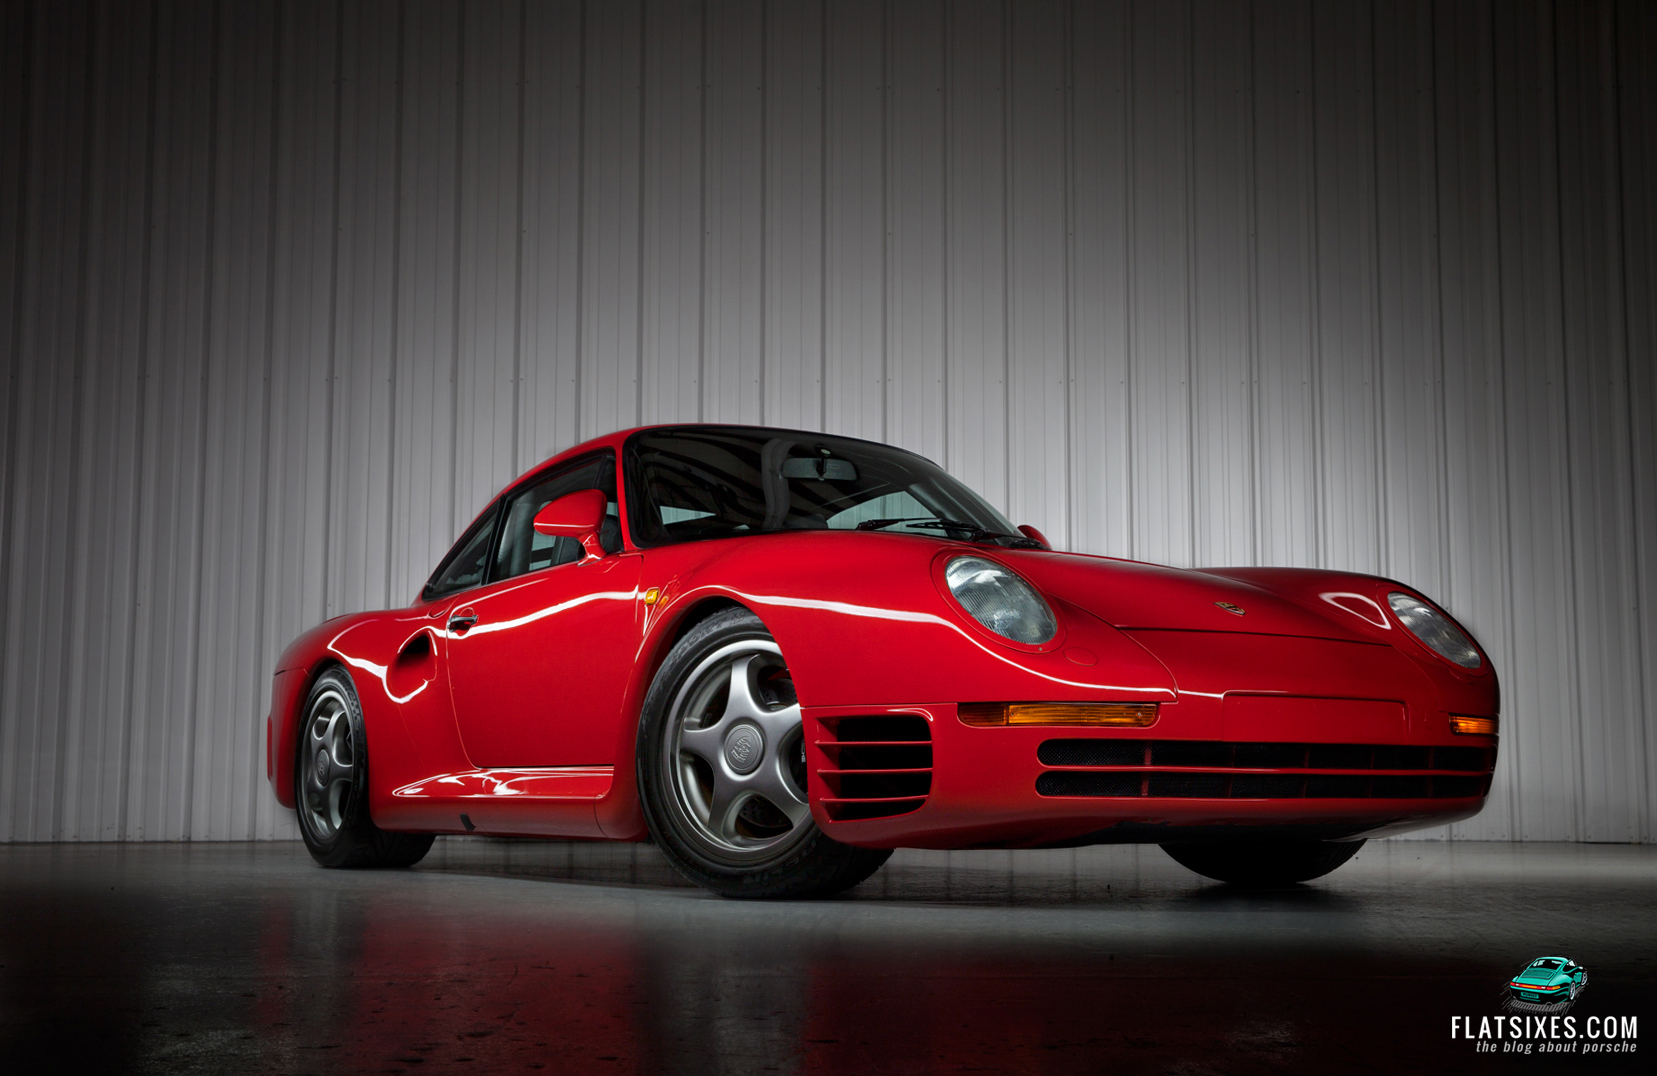 Porsche 959 For Sale >> Gooding Showcases A Gorgeous Porsche 959 S For Sale